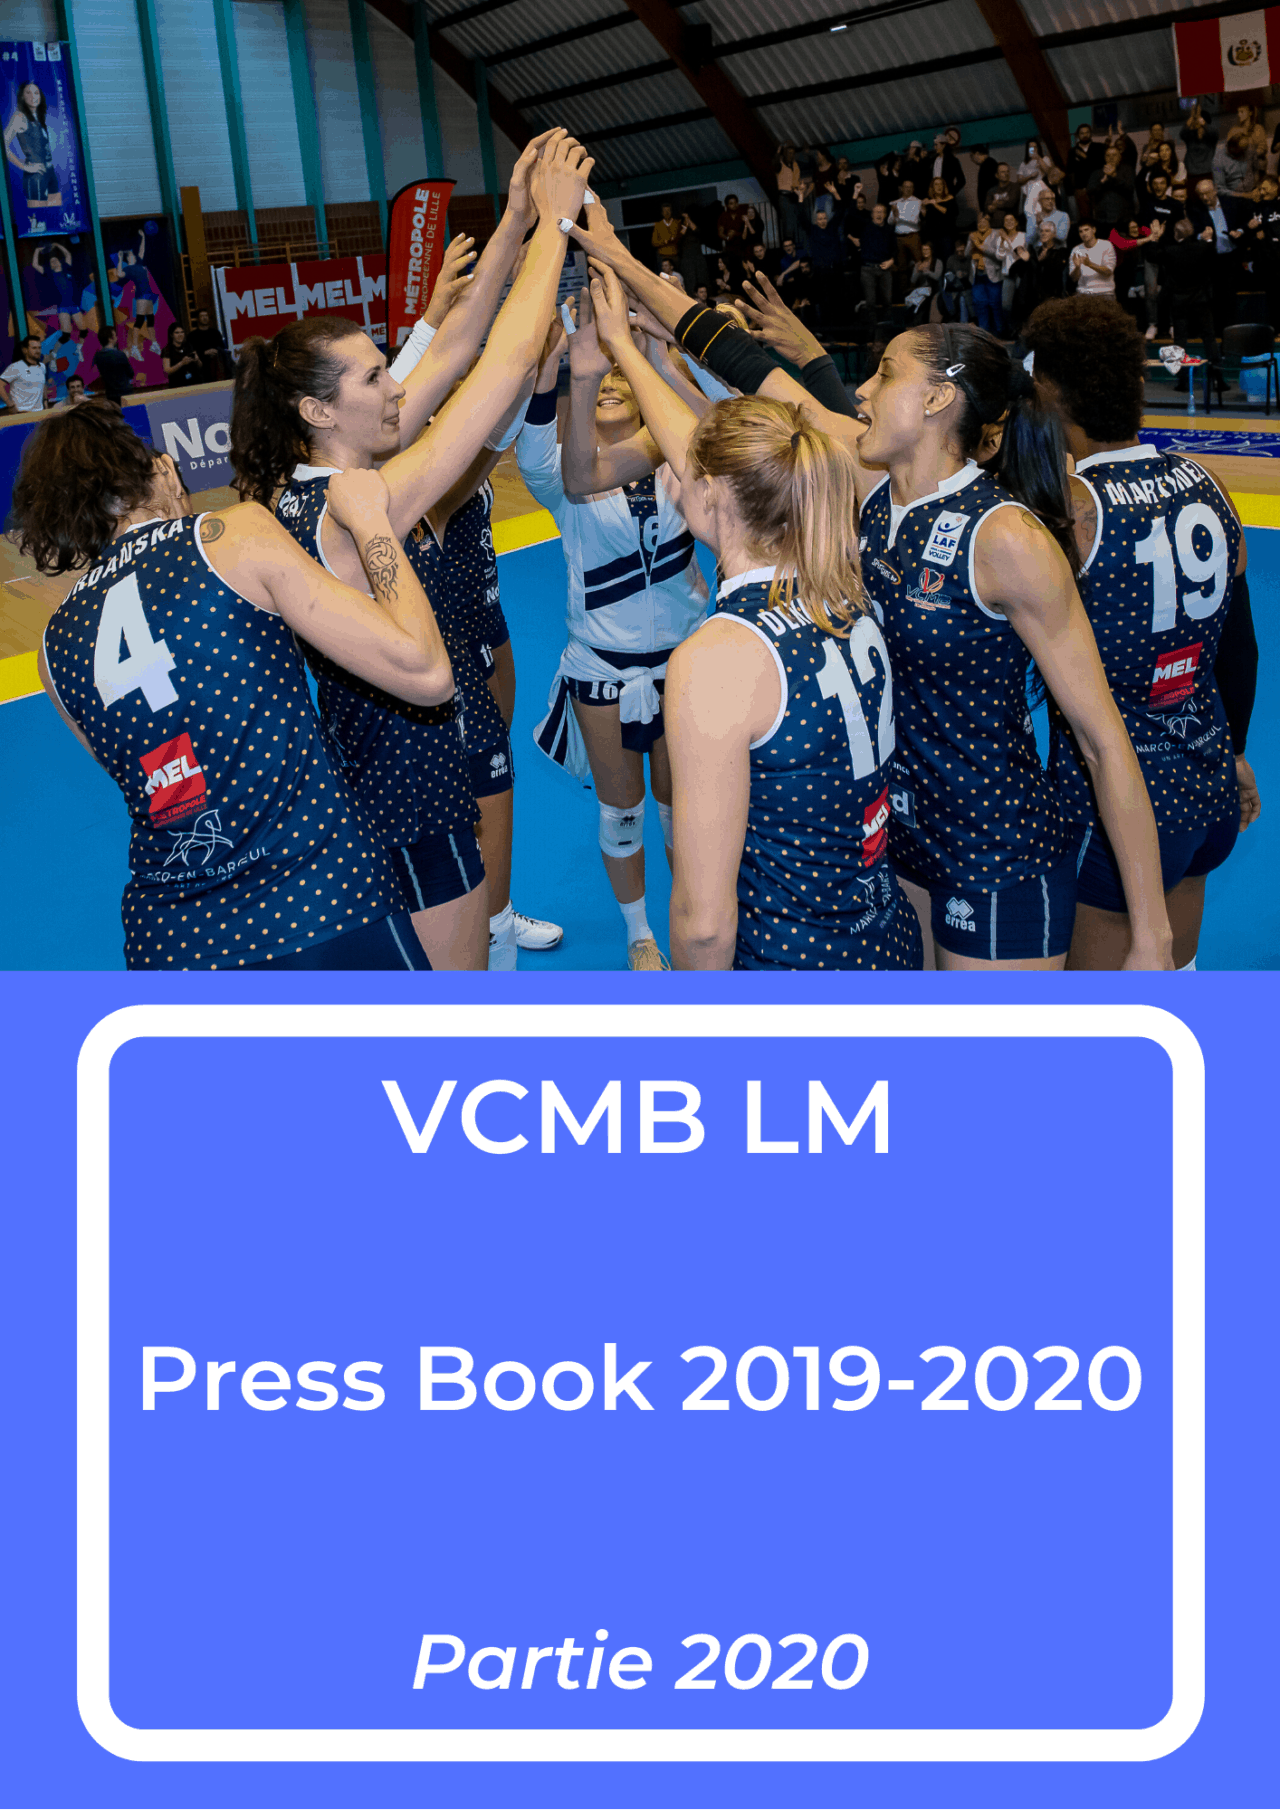 https://www.marcqvolley.com/wp-content/uploads/2020/04/Accueil-Press-book-1280x1810.png